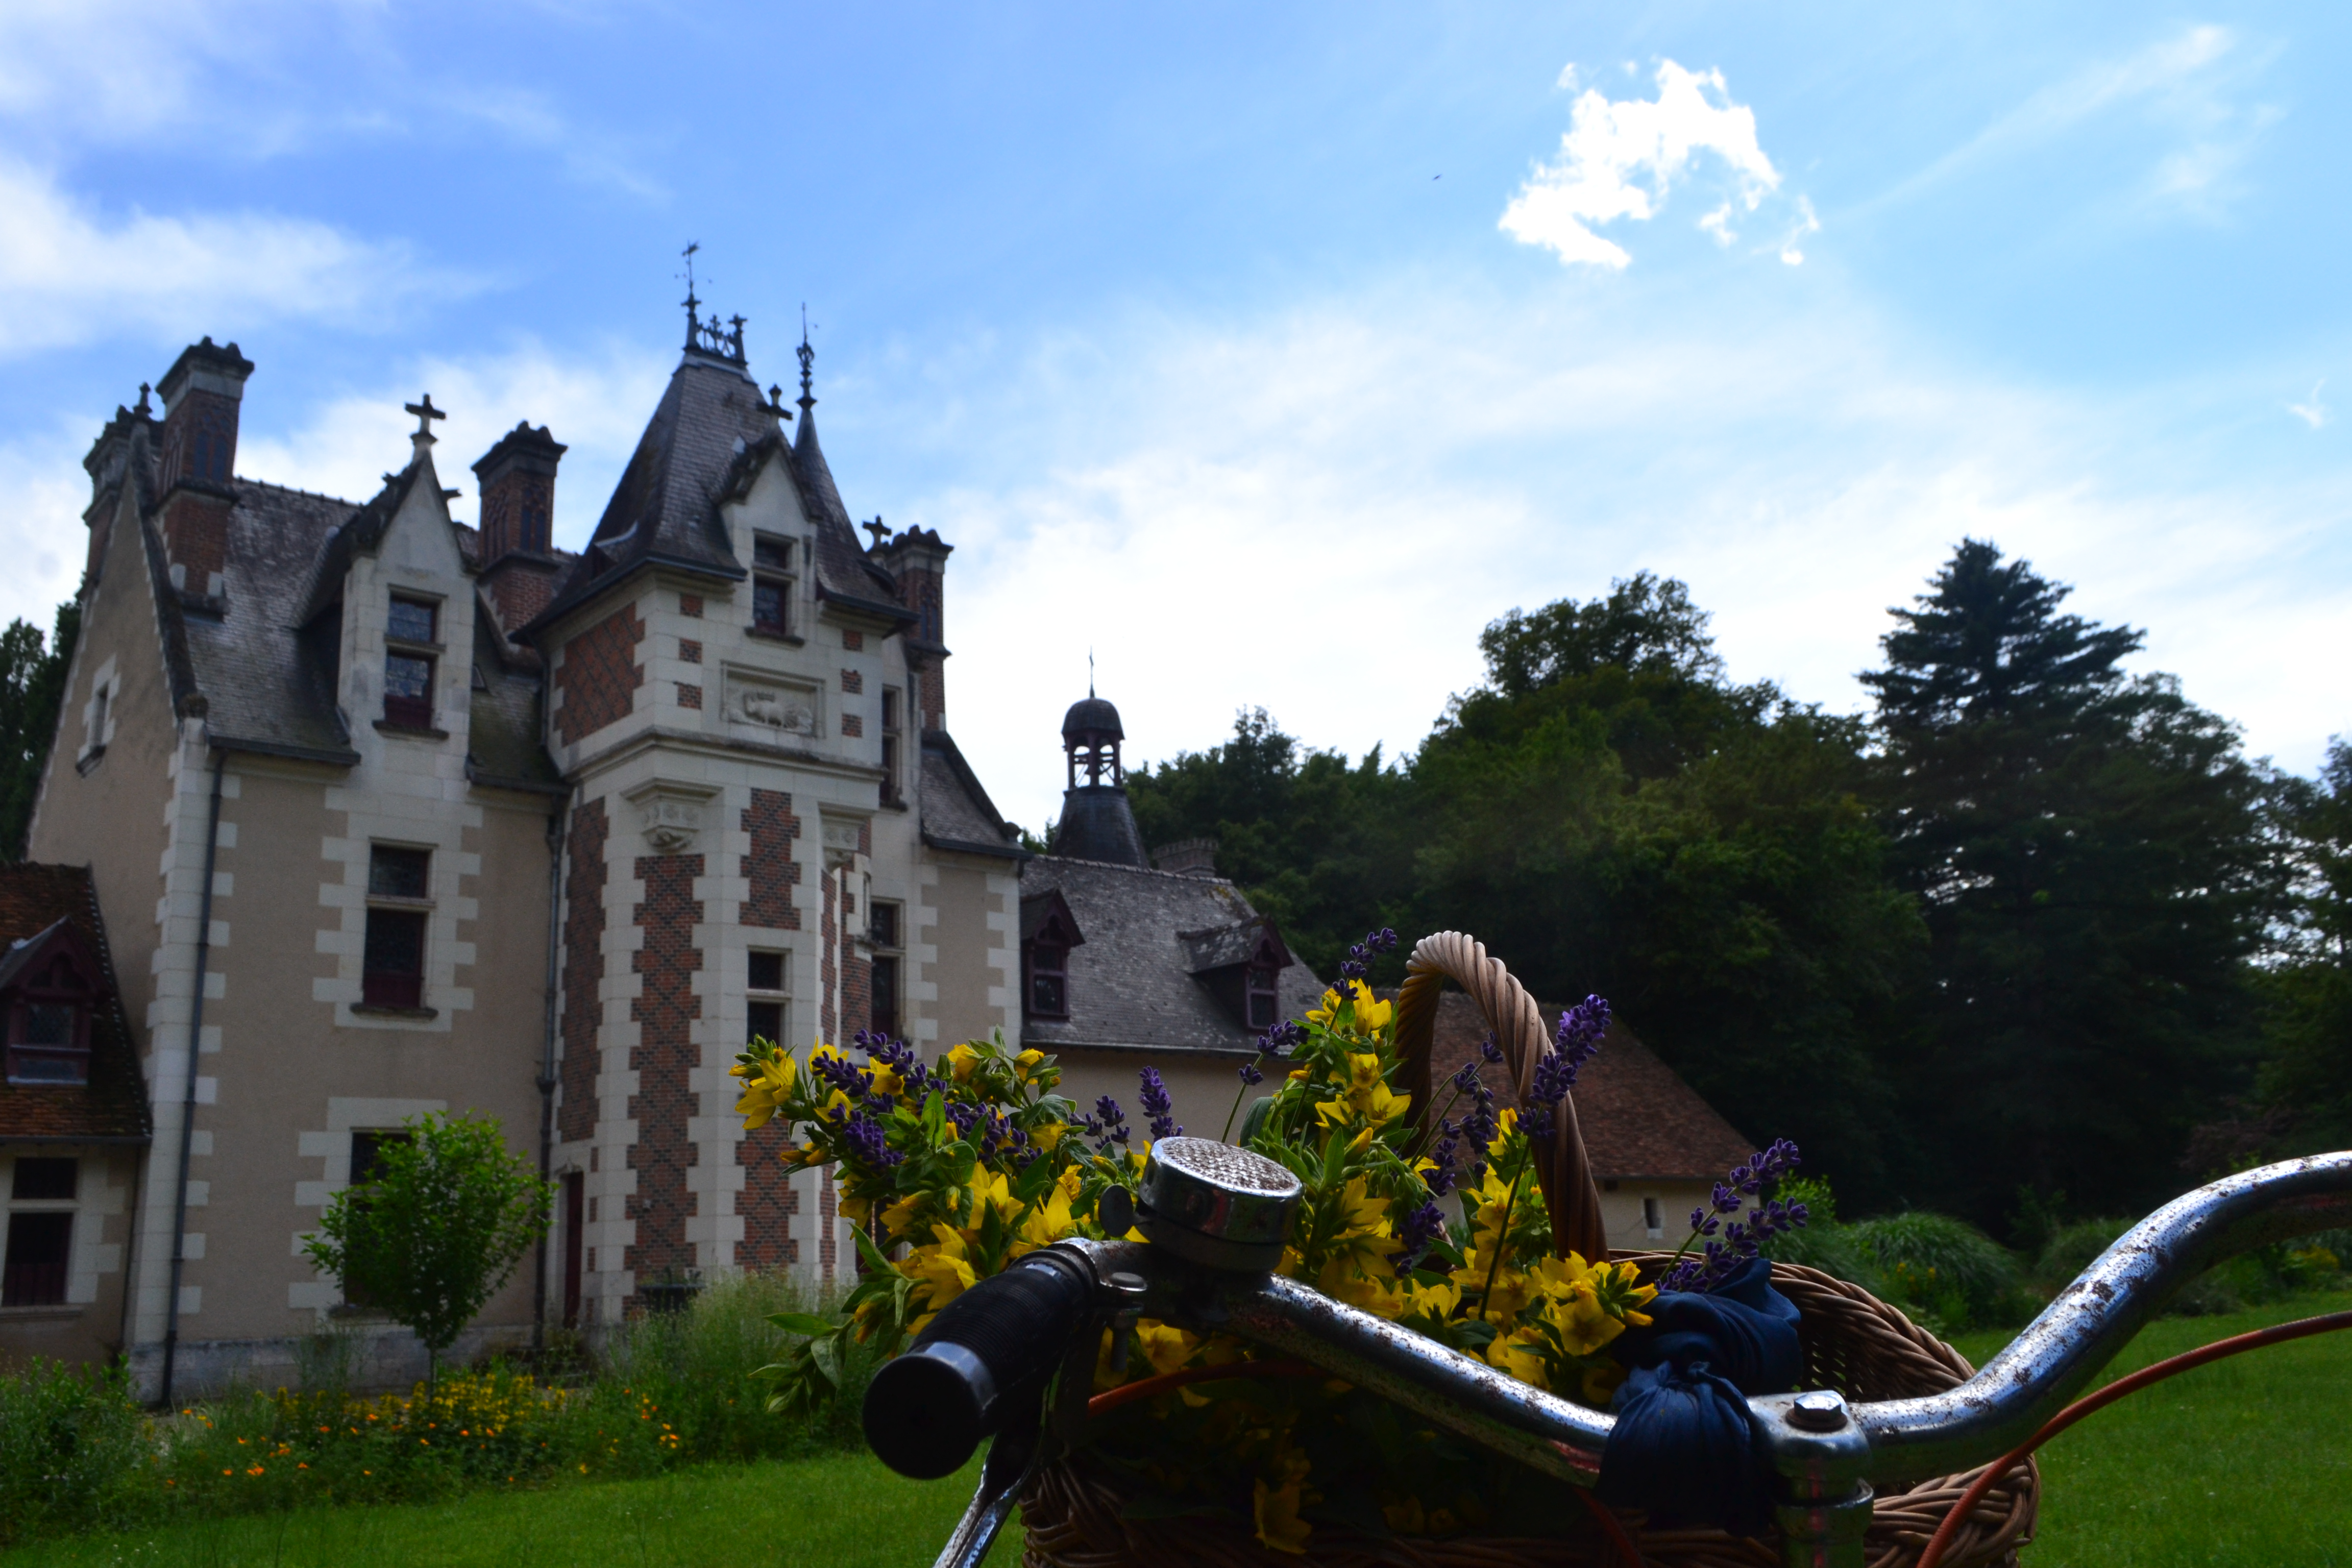 Add chateau de Troussay to your cycling tour of the Loire Valley